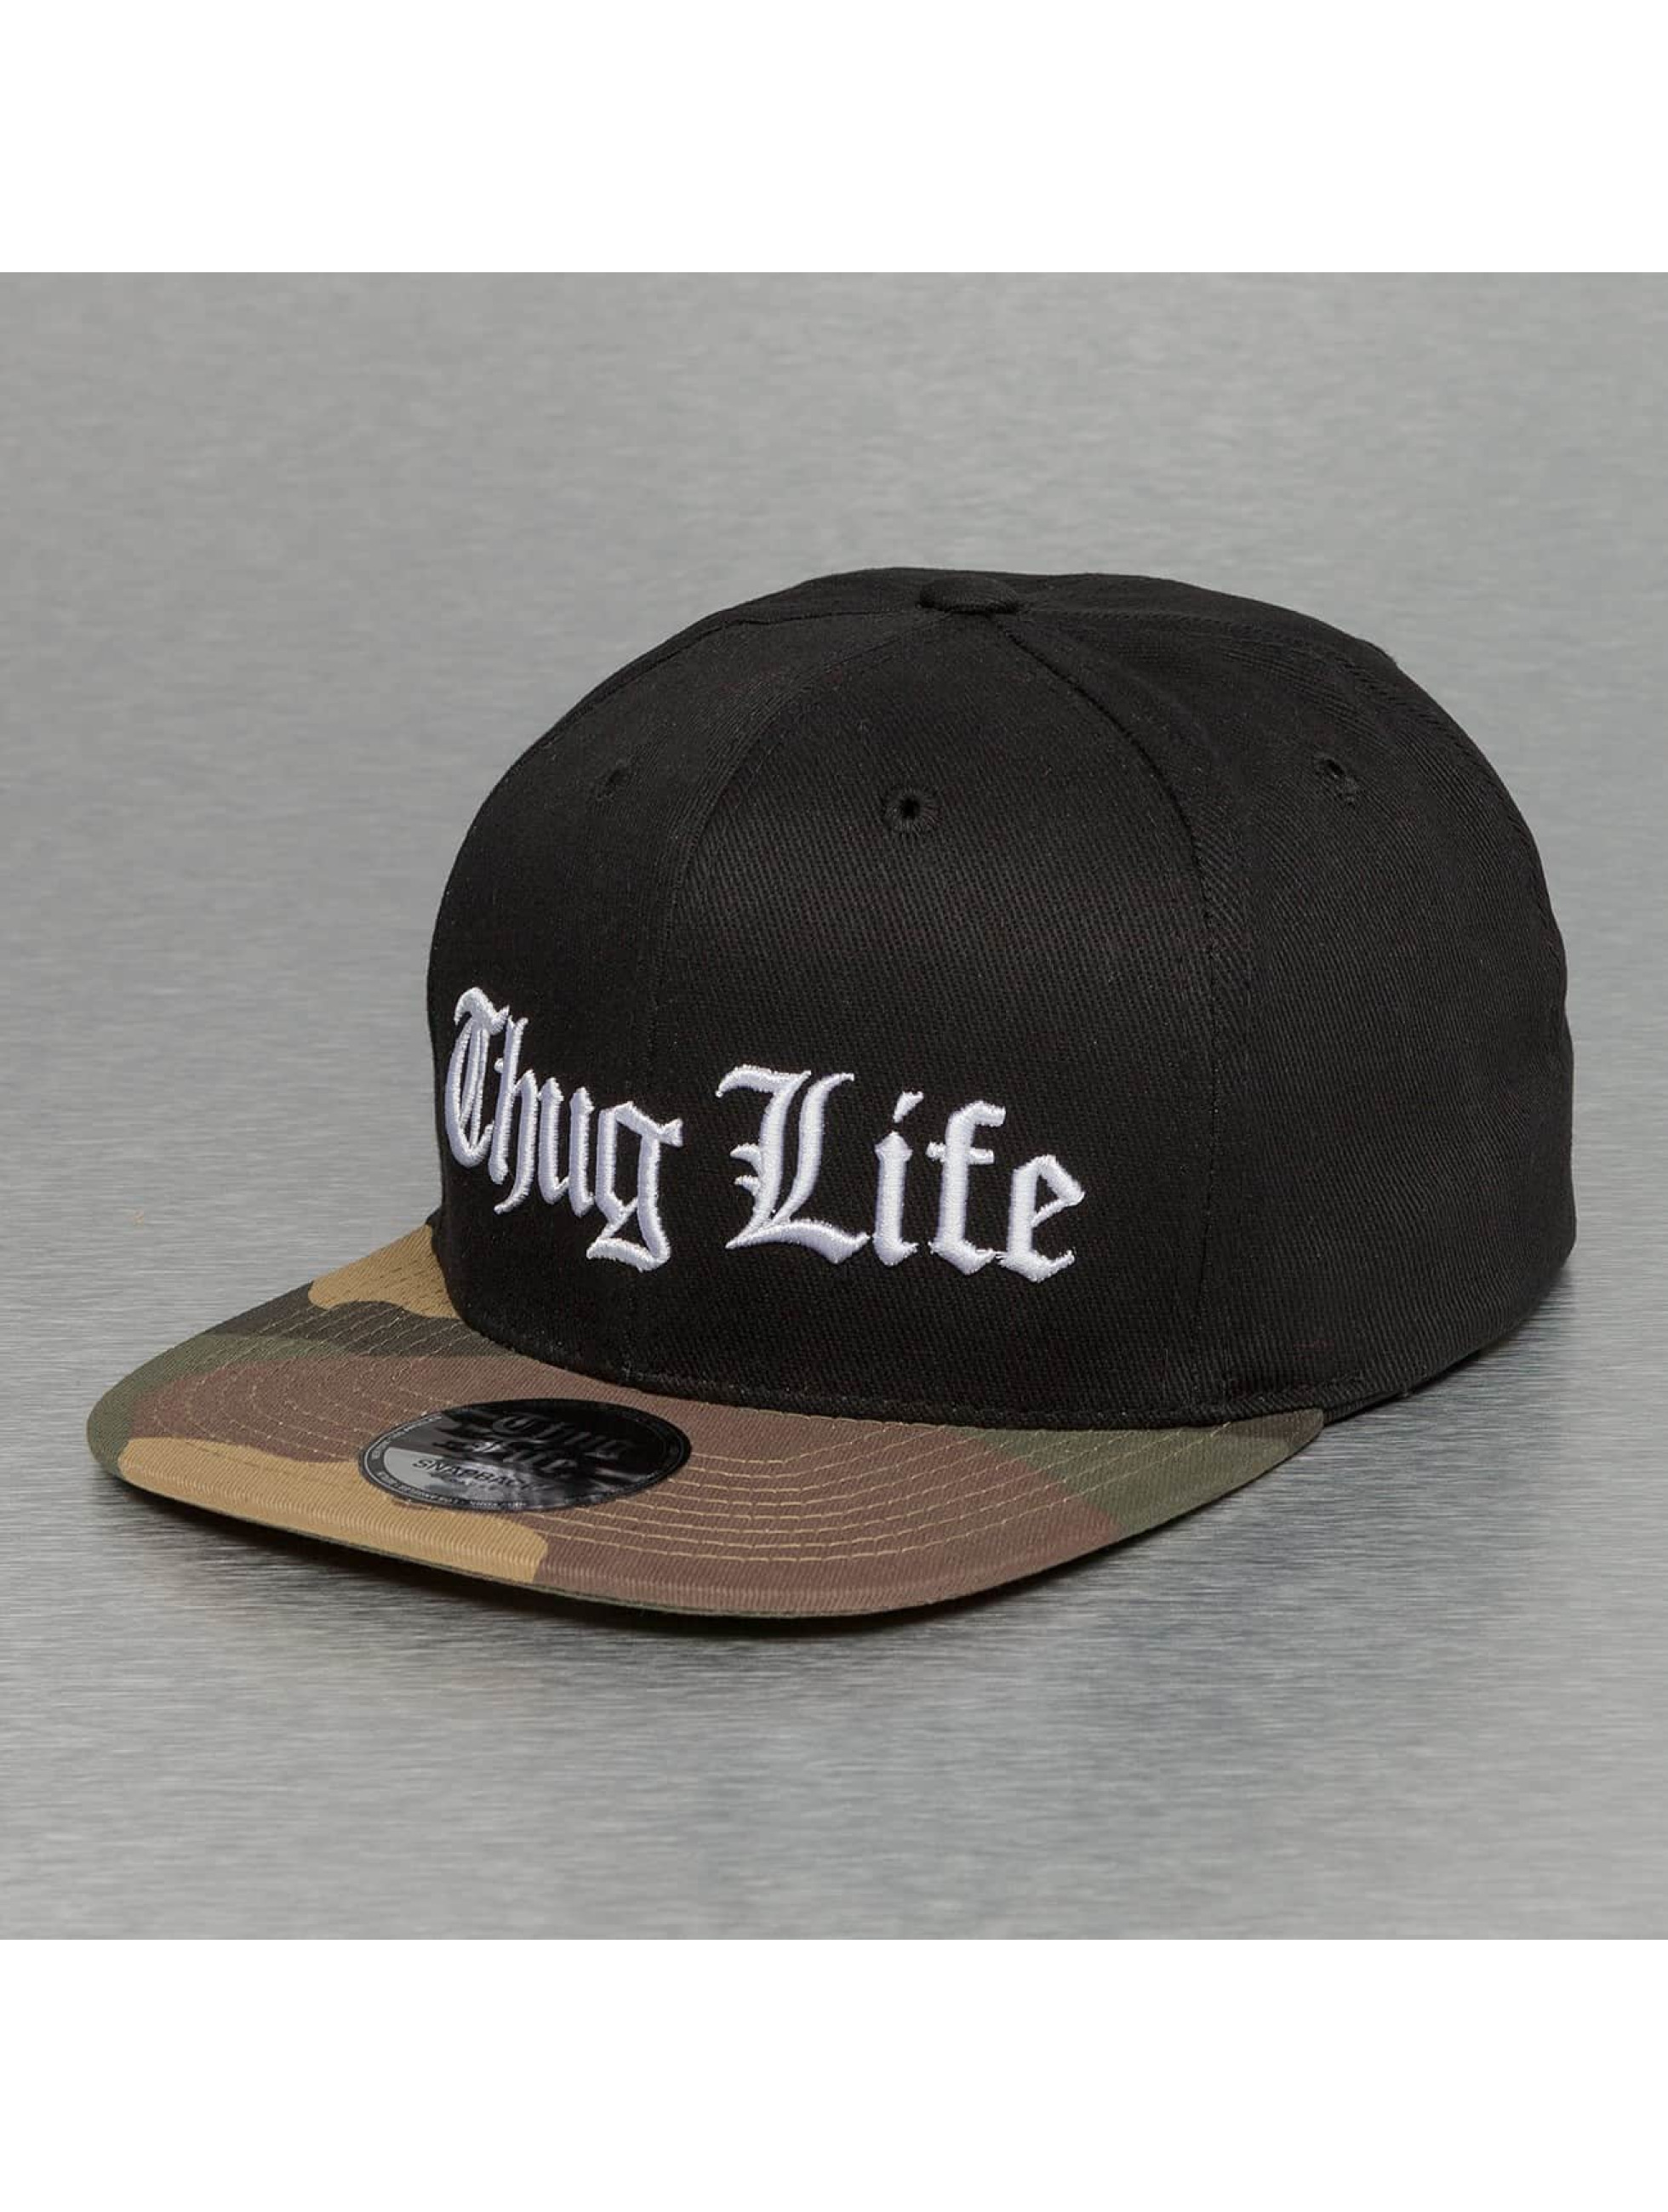 Thug Life / Snapback Cap White Logo in black Adjustable